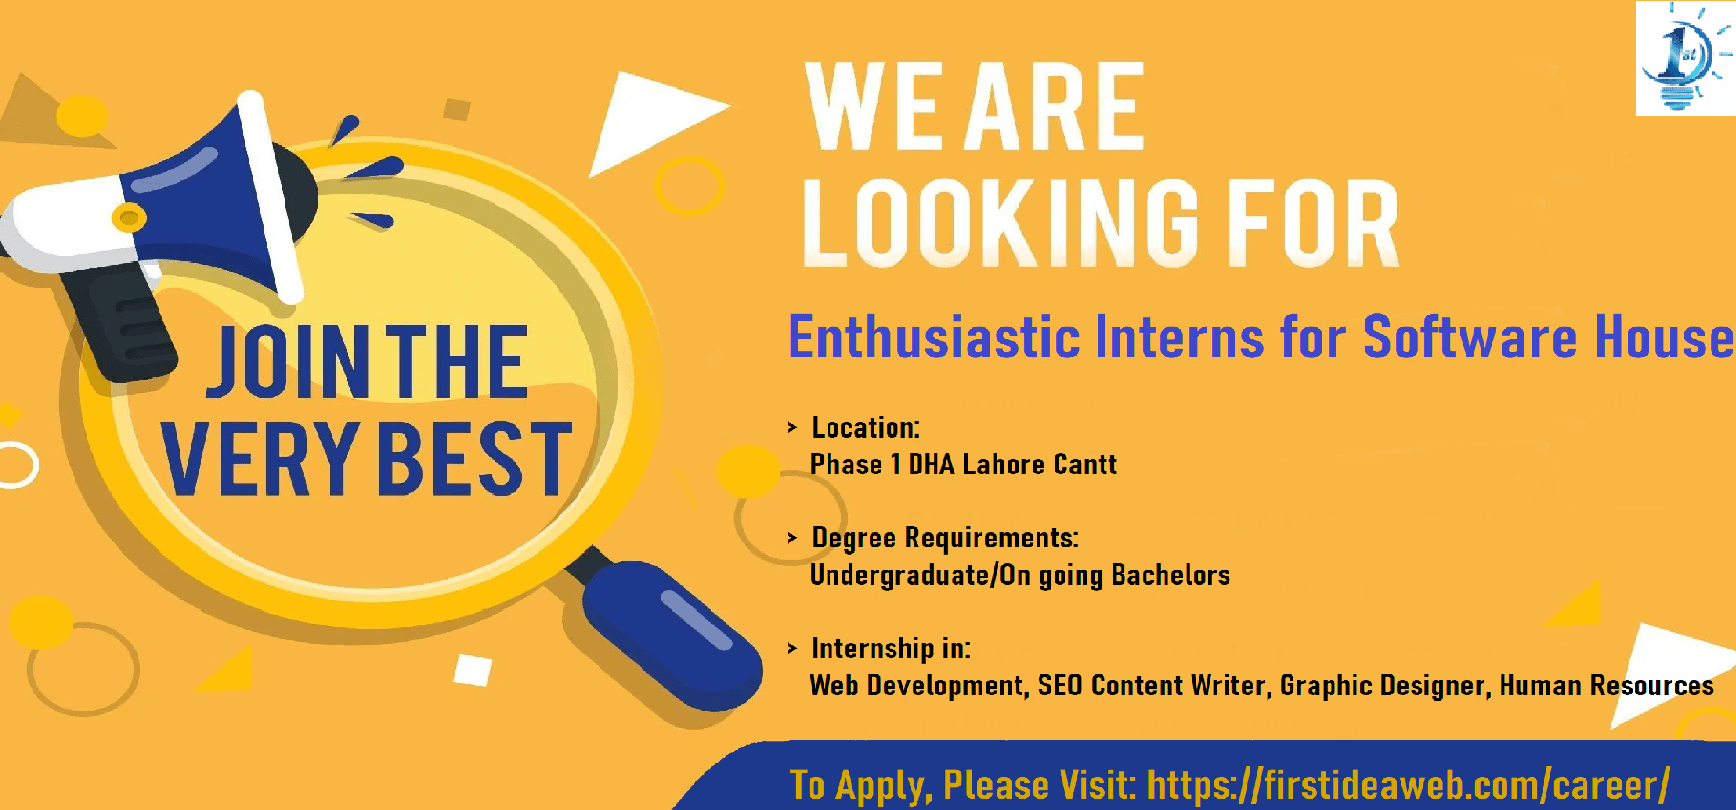 Internships – Web Development – SEO Content Writing – Graphic Designing – Human Resources